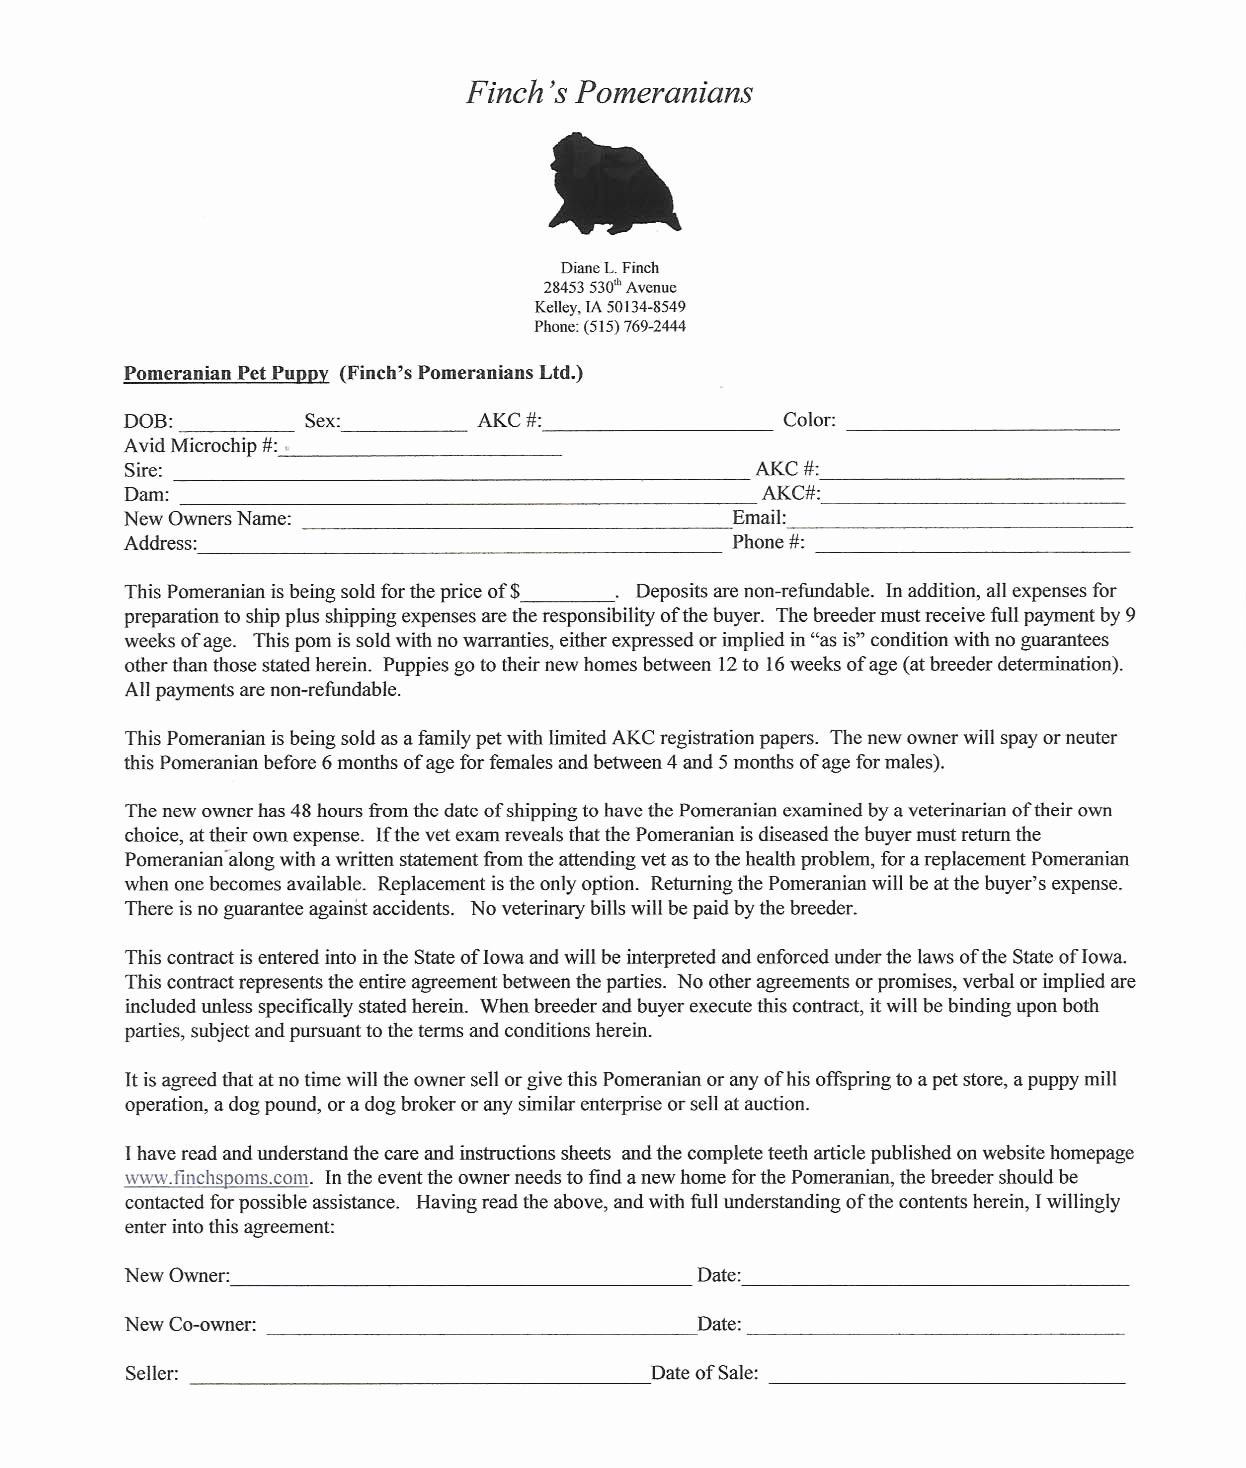 Puppy Sales Contract Template New Breeding Pomeranians